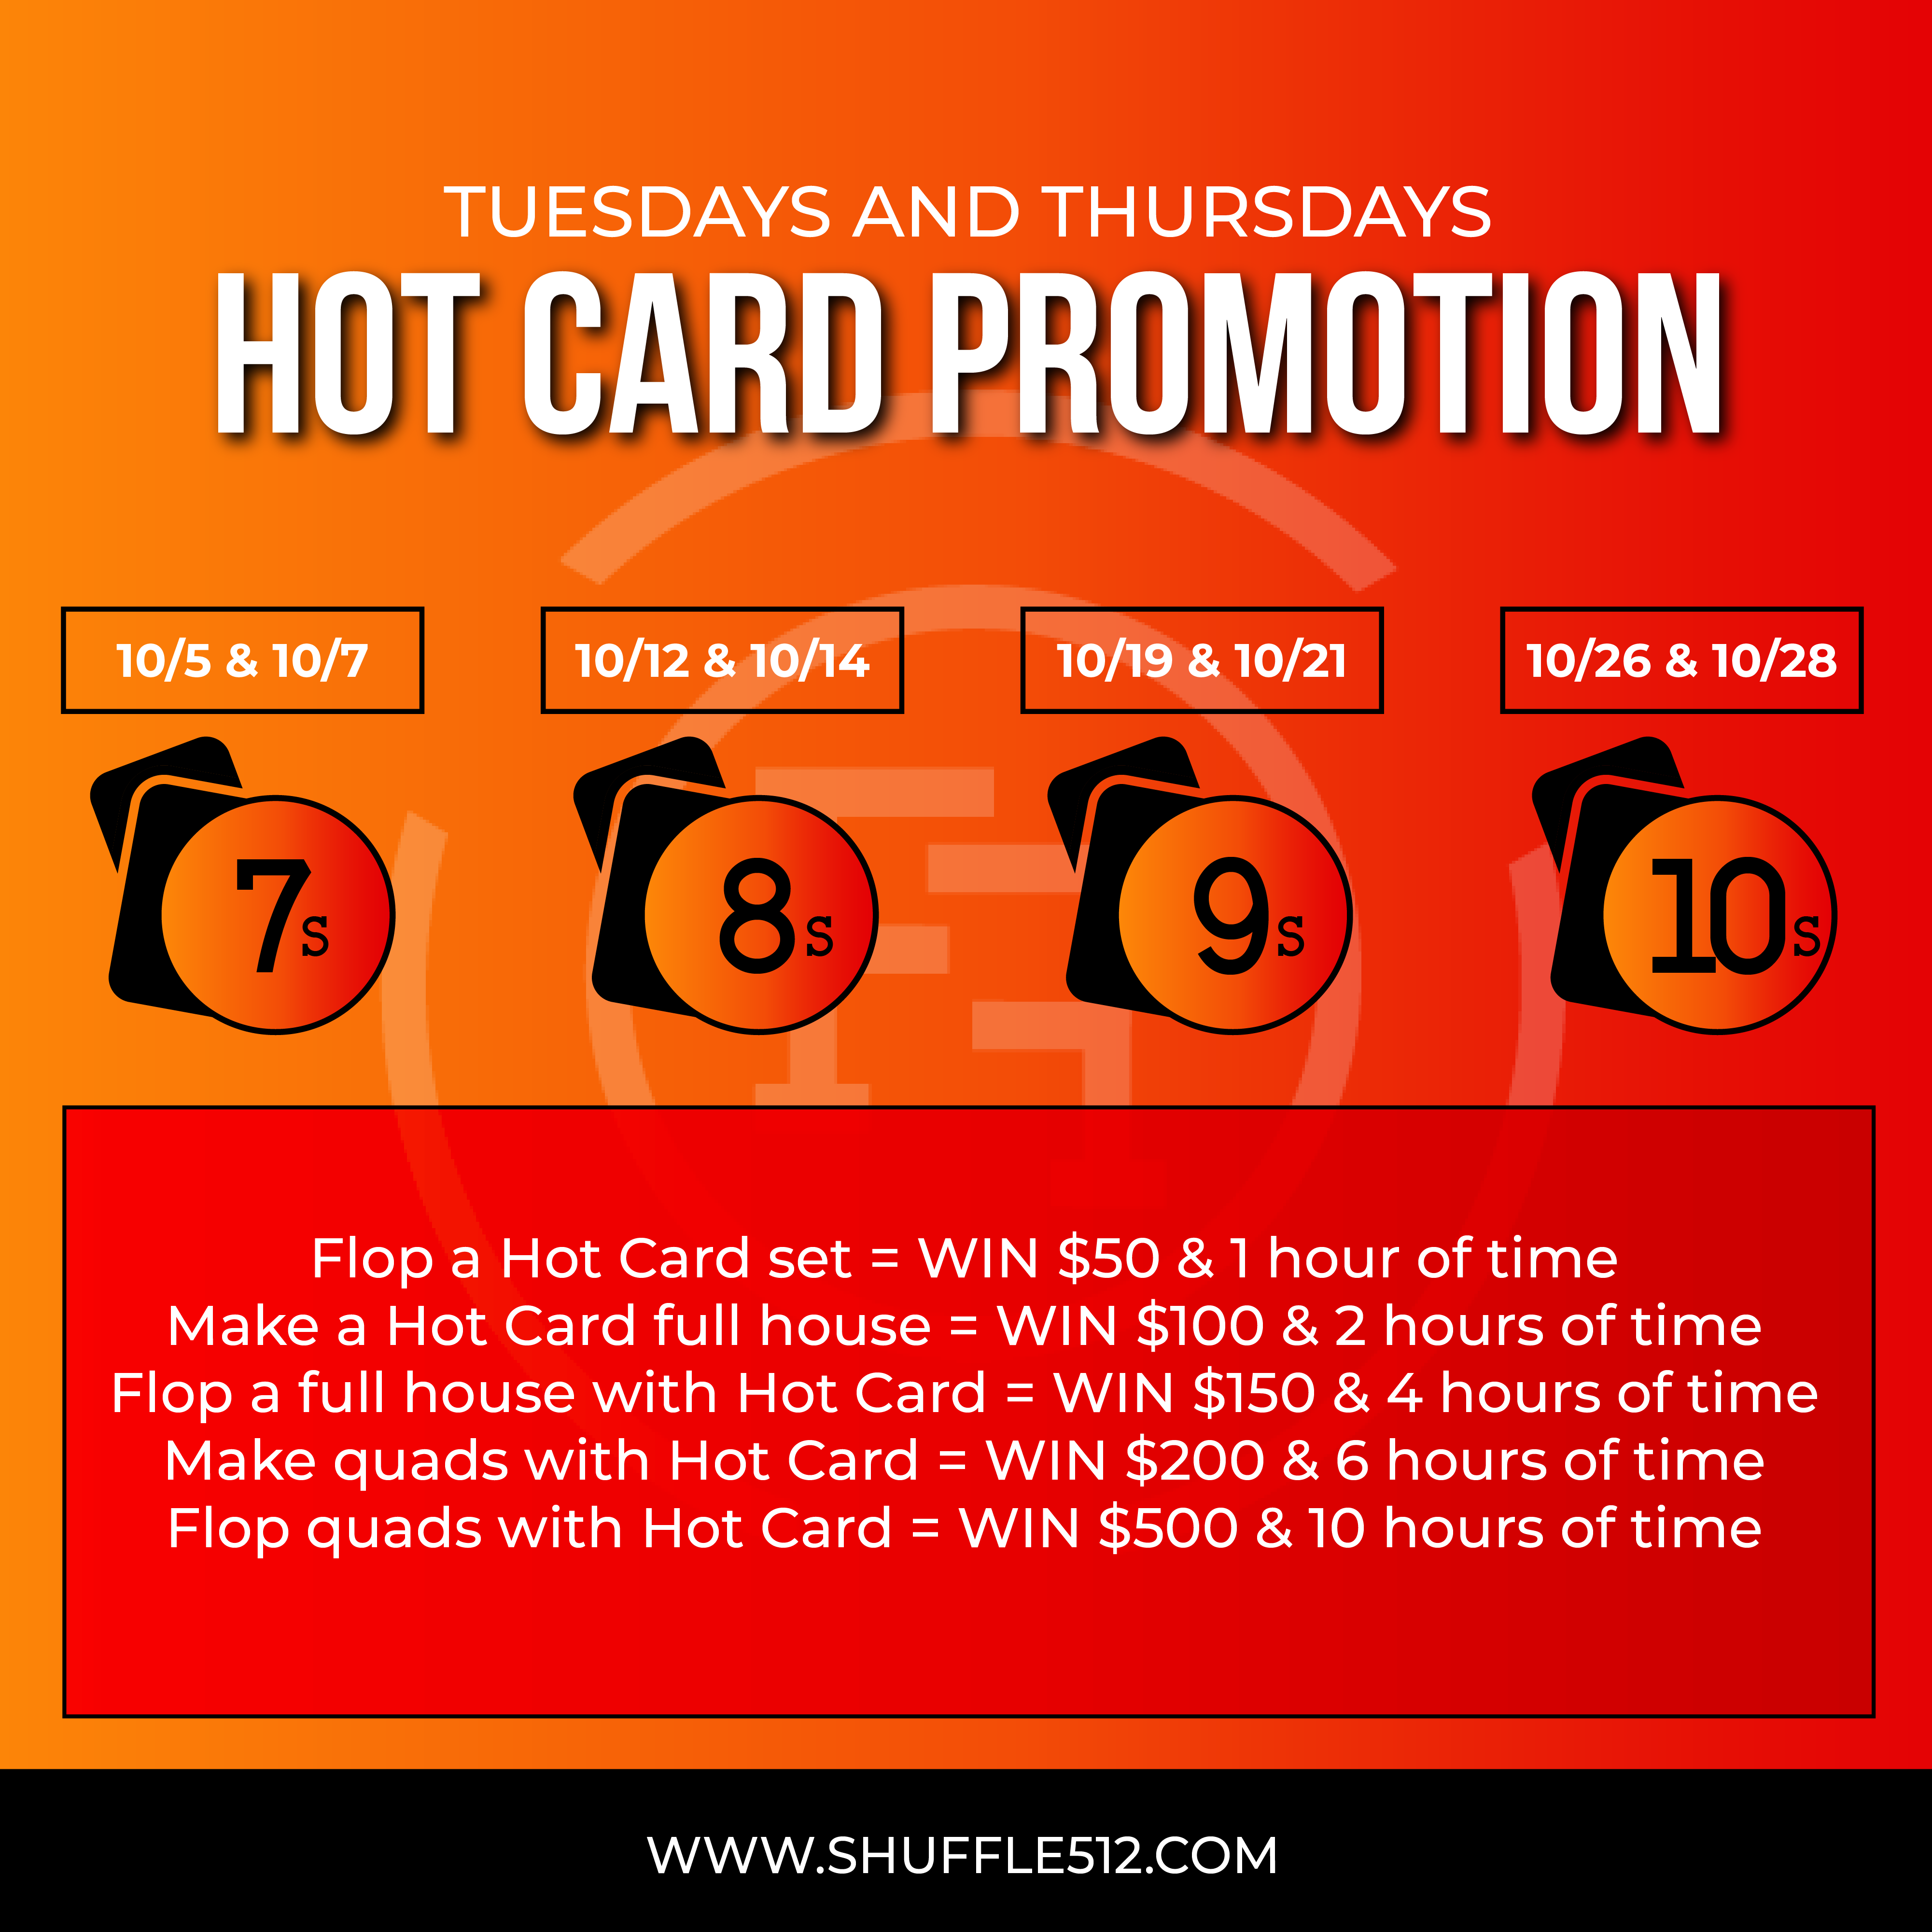 Shuffle 512 Hot Card Promotion 7s square-01